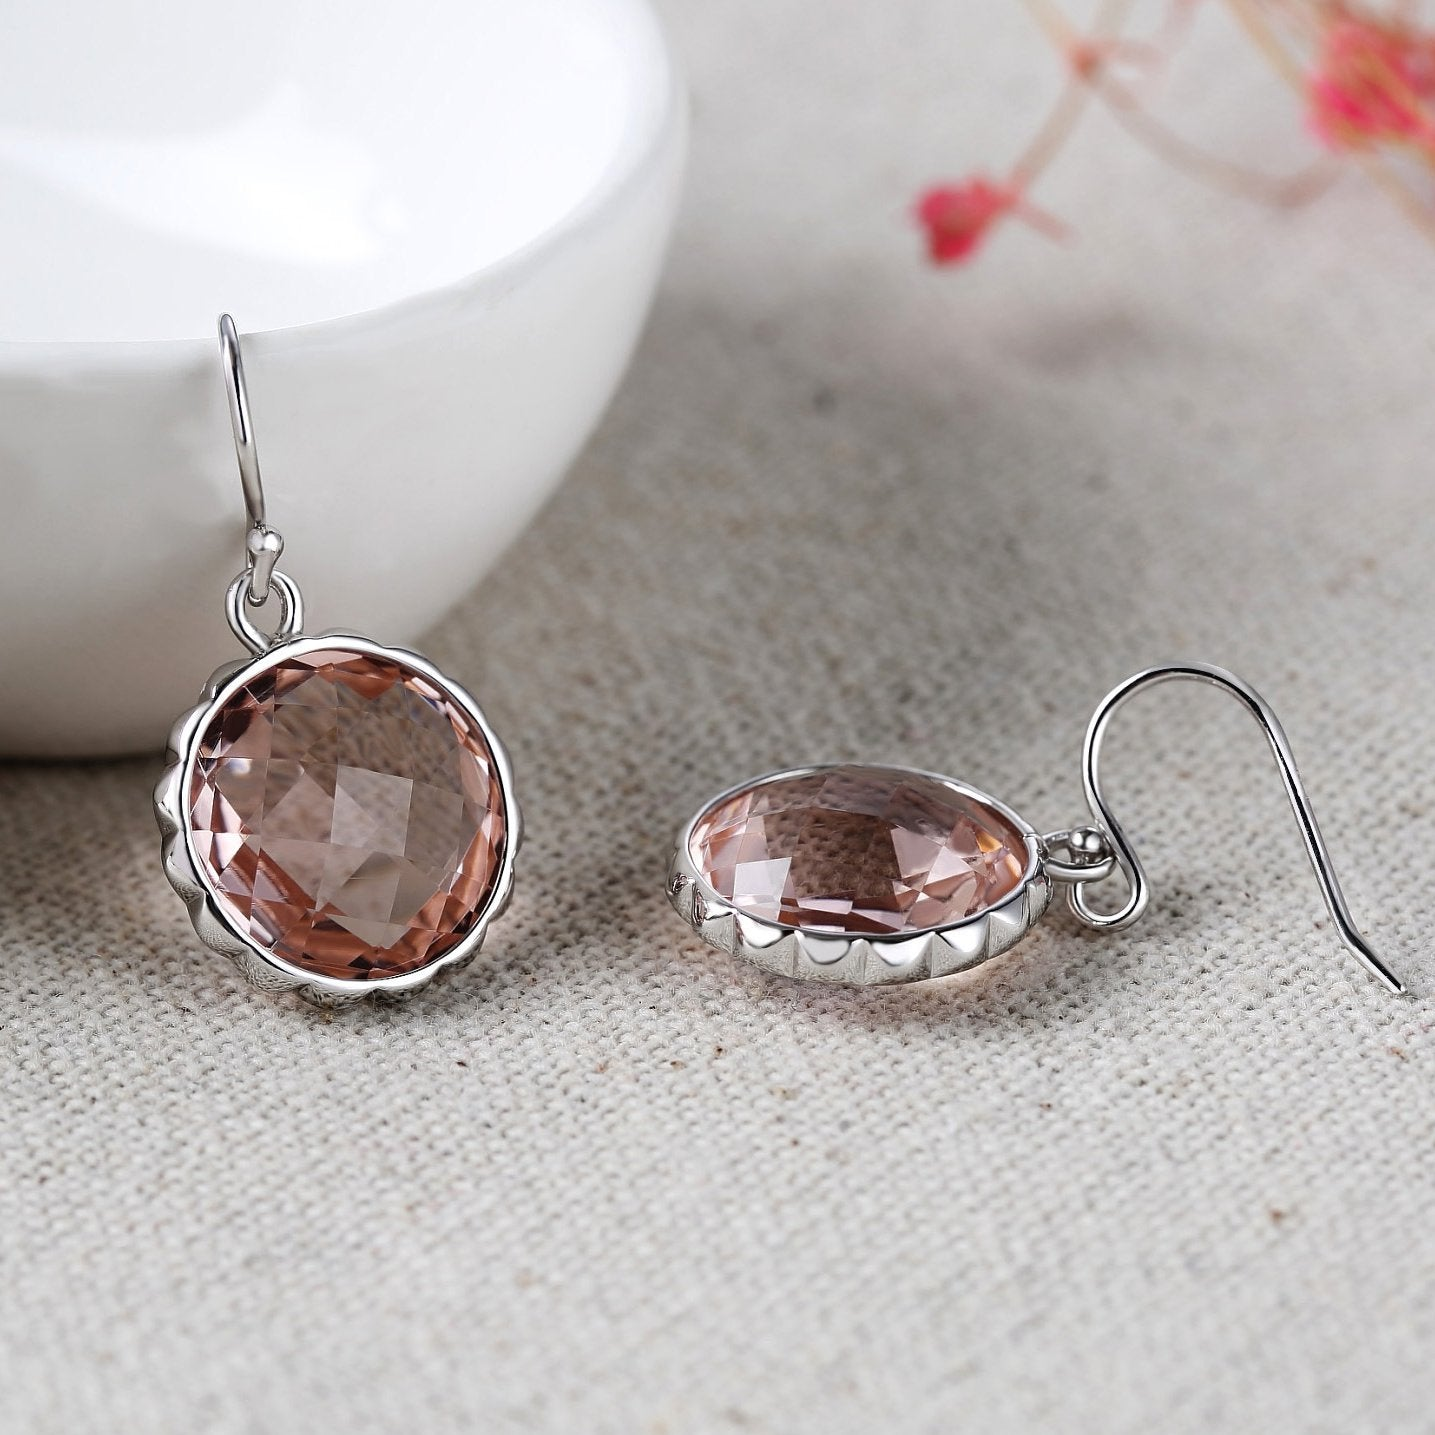 Delicate Round Crystal Drop Earrings